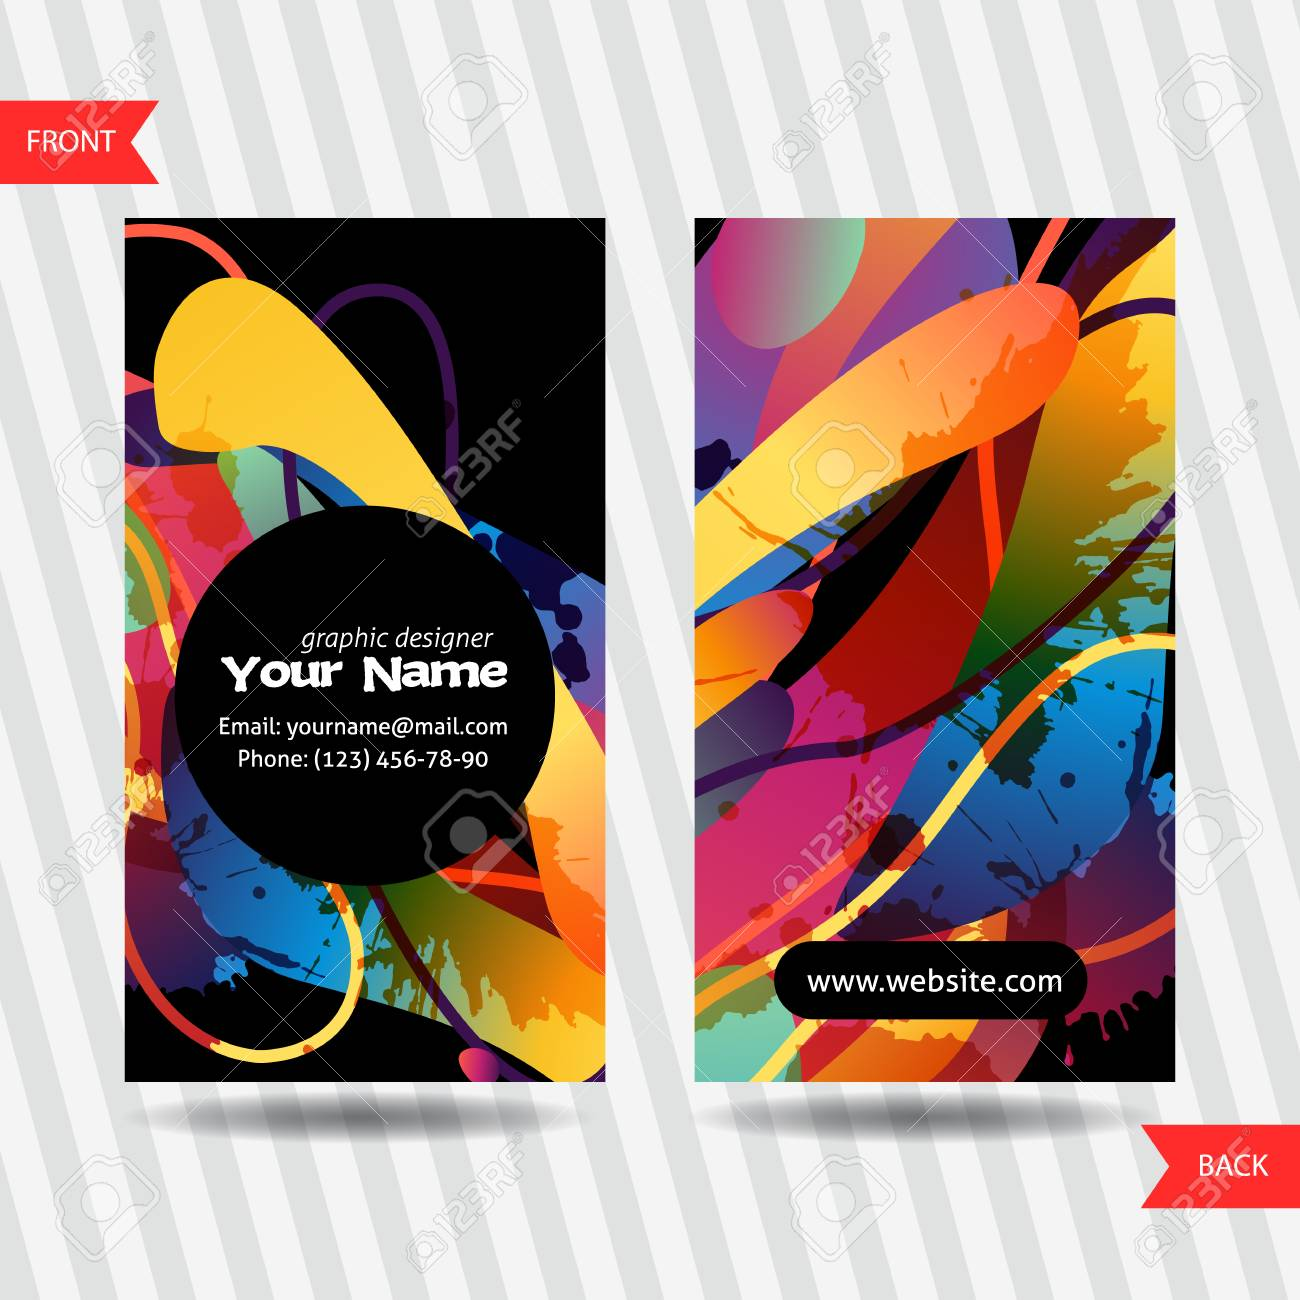 colorful decorative business cards with free shapes and blots